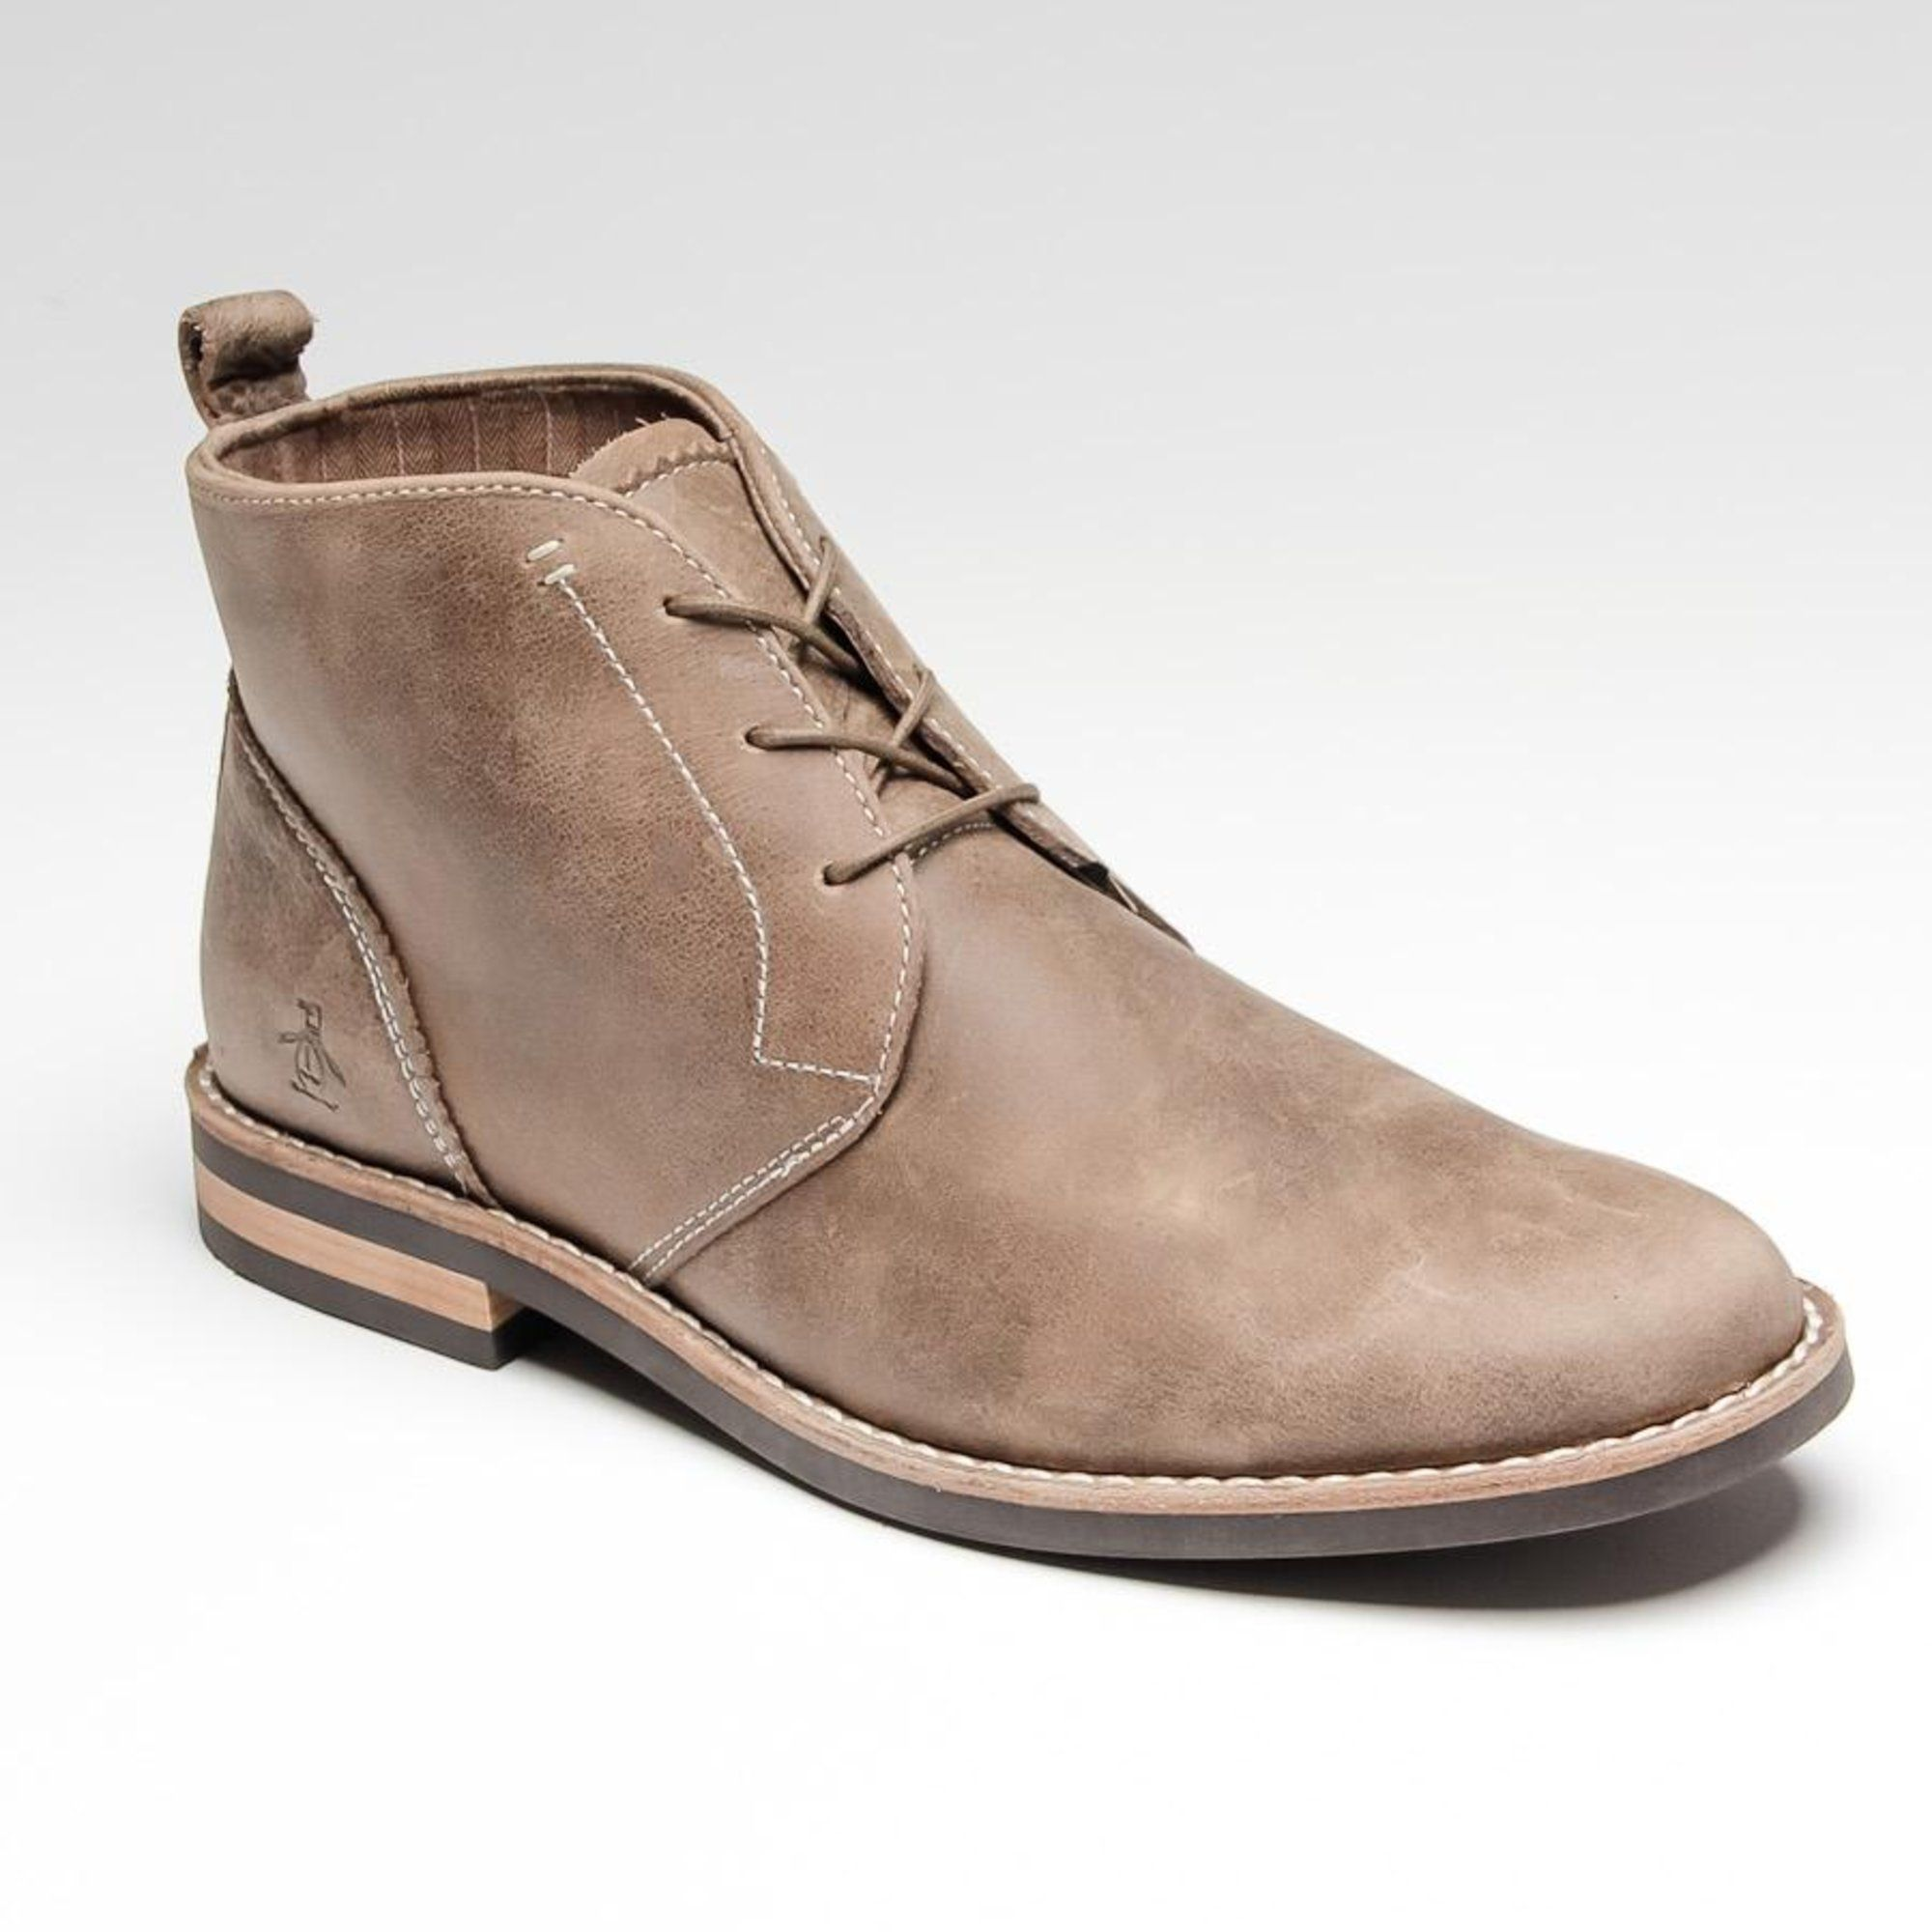 new season perfect quality variousstyles PENGUIN FOOTWEAR MERLE Color: Shitake Material: Leather Fit ...